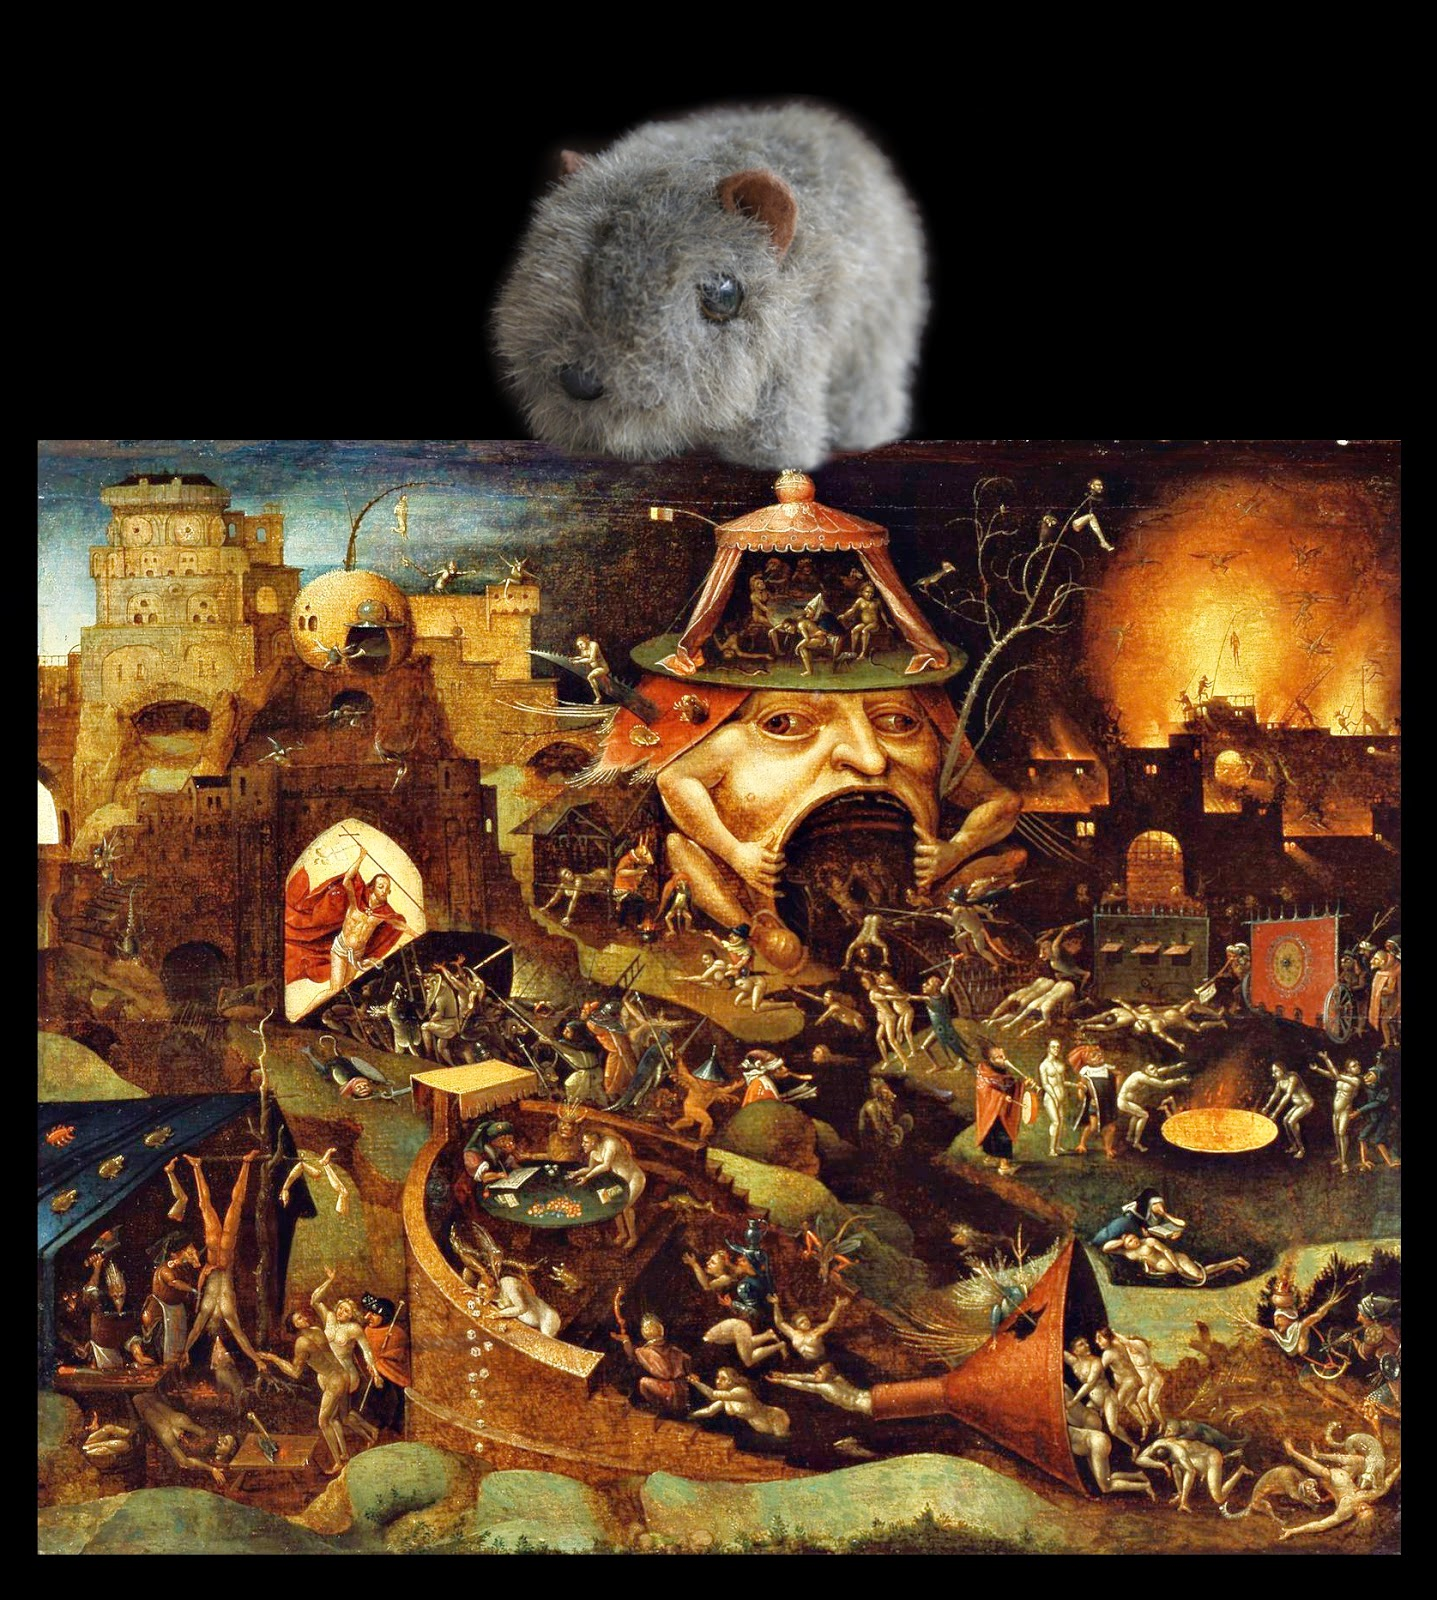 Shane and Hieronymus Bosch